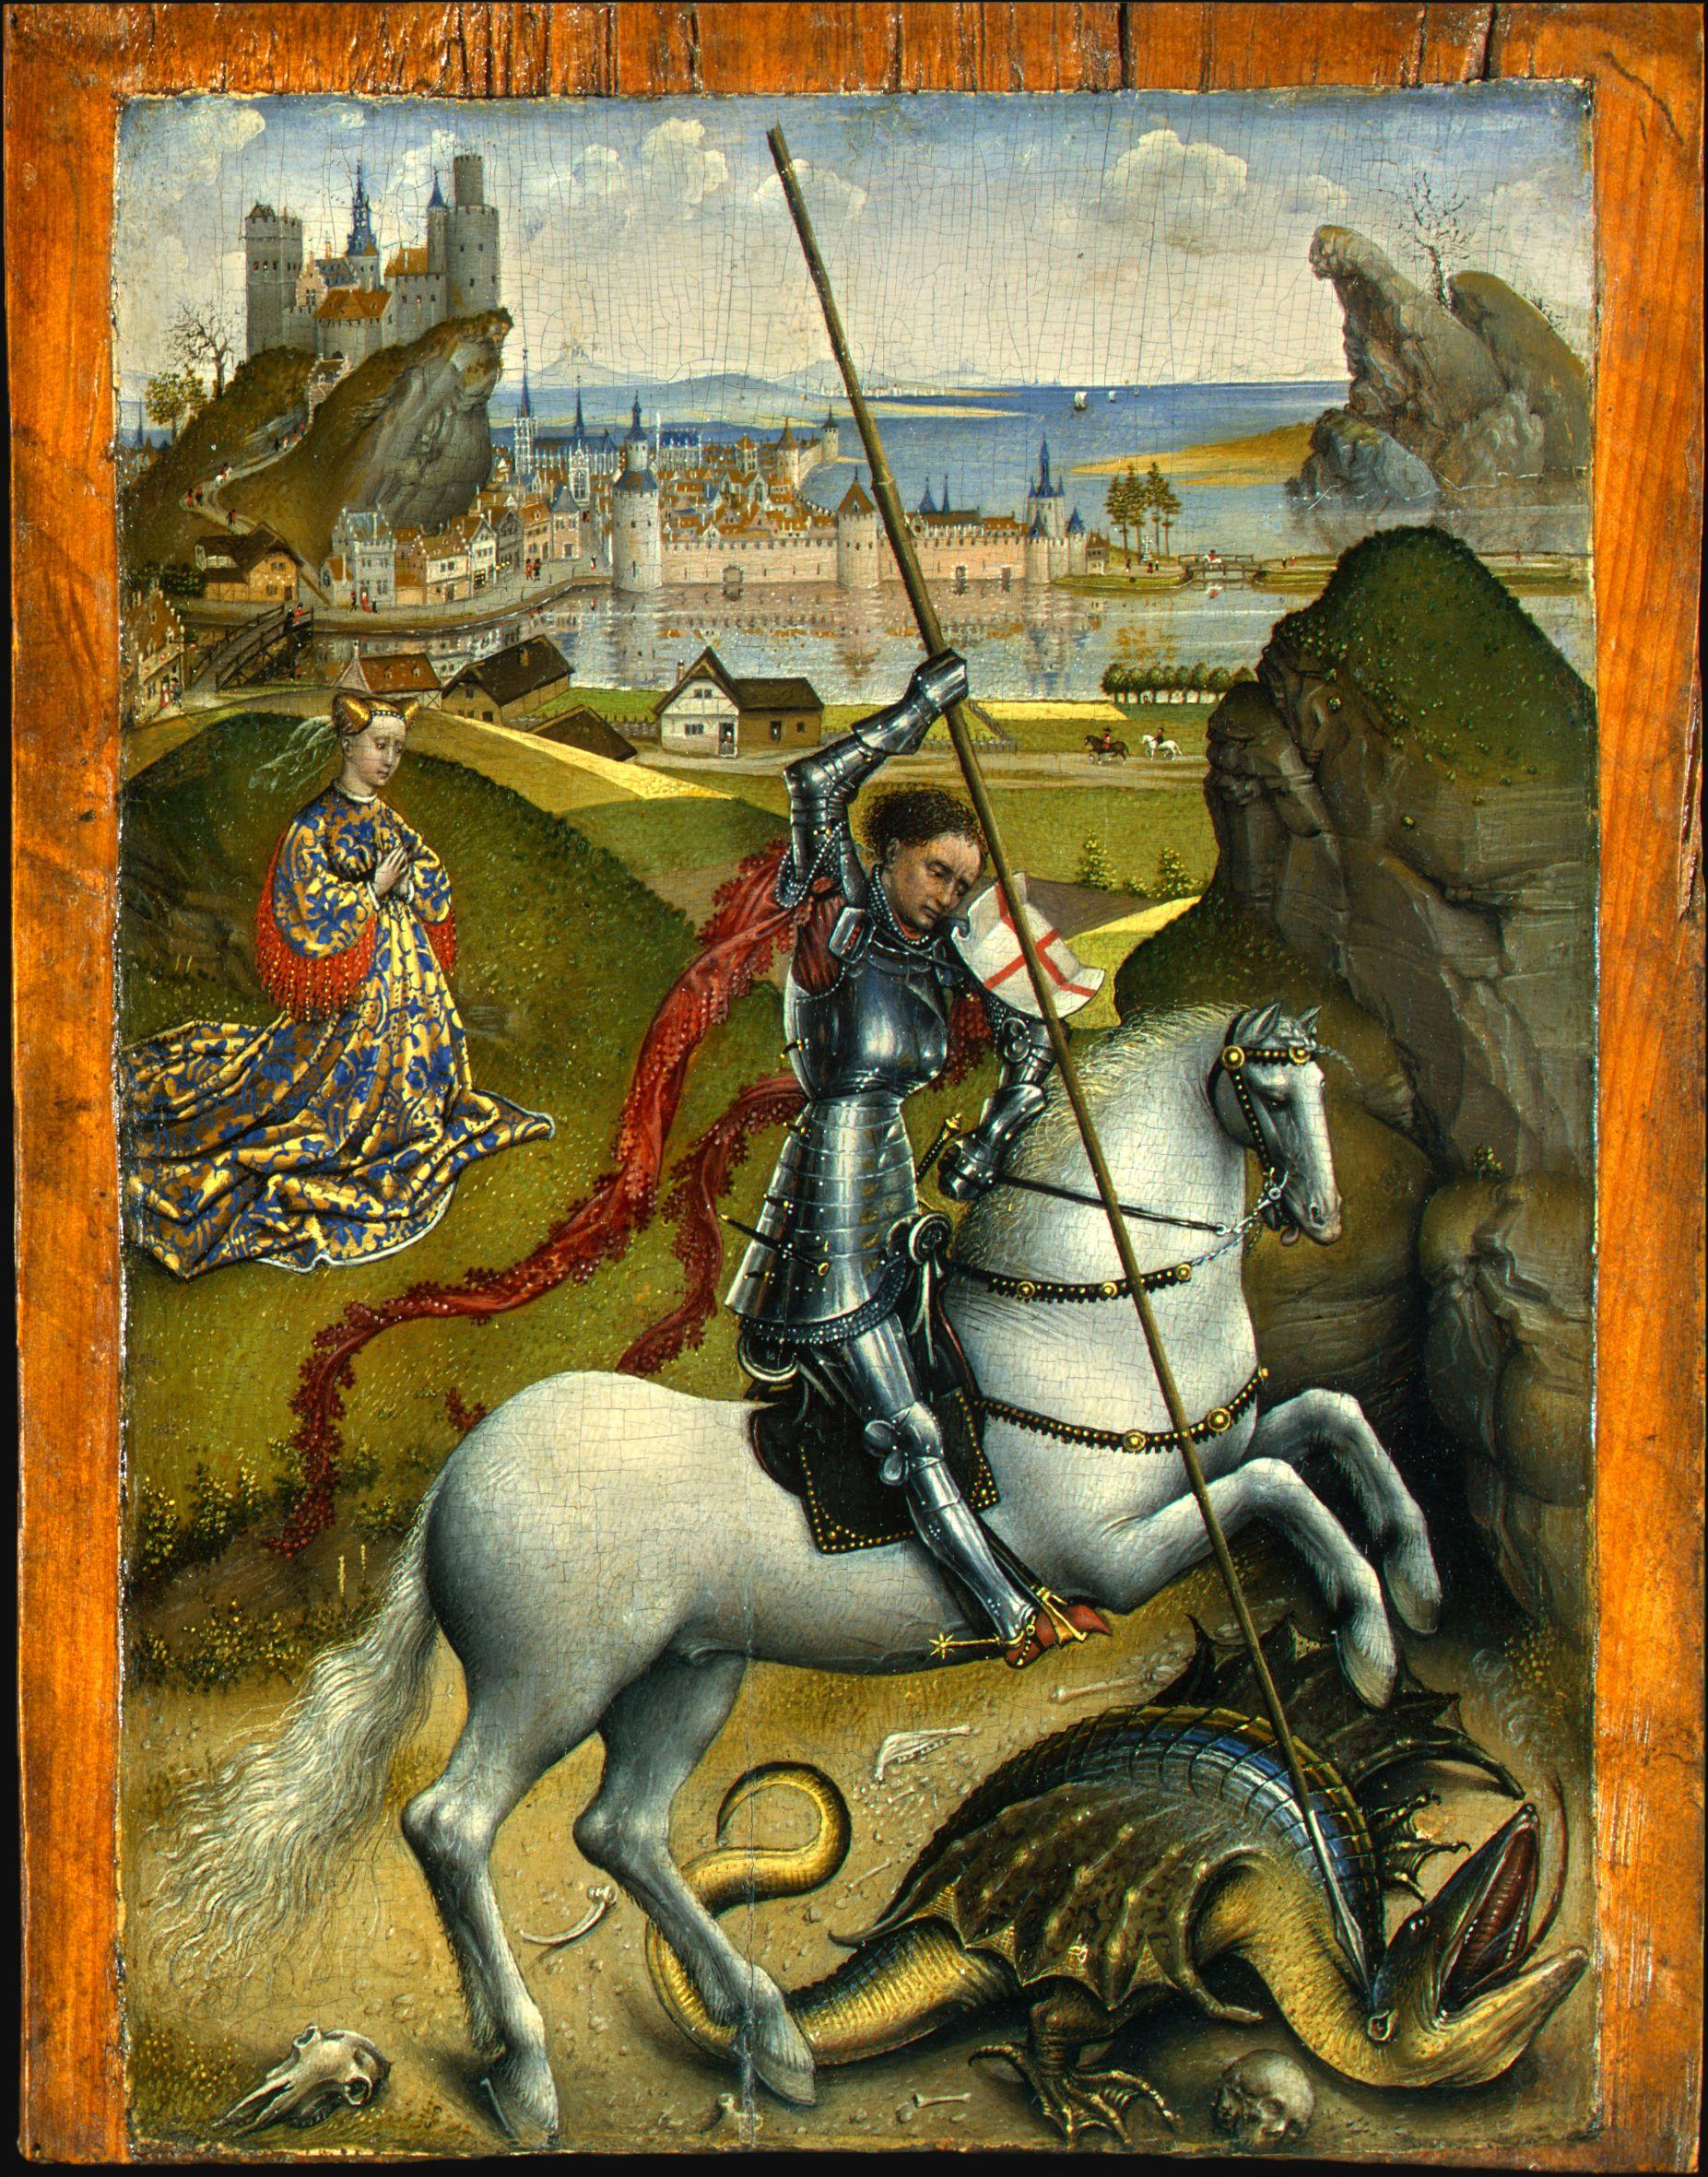 Rogier_van_der_Weyden_-_Saint_George_and_the_Dragon,_NGA,_Washington.jpg